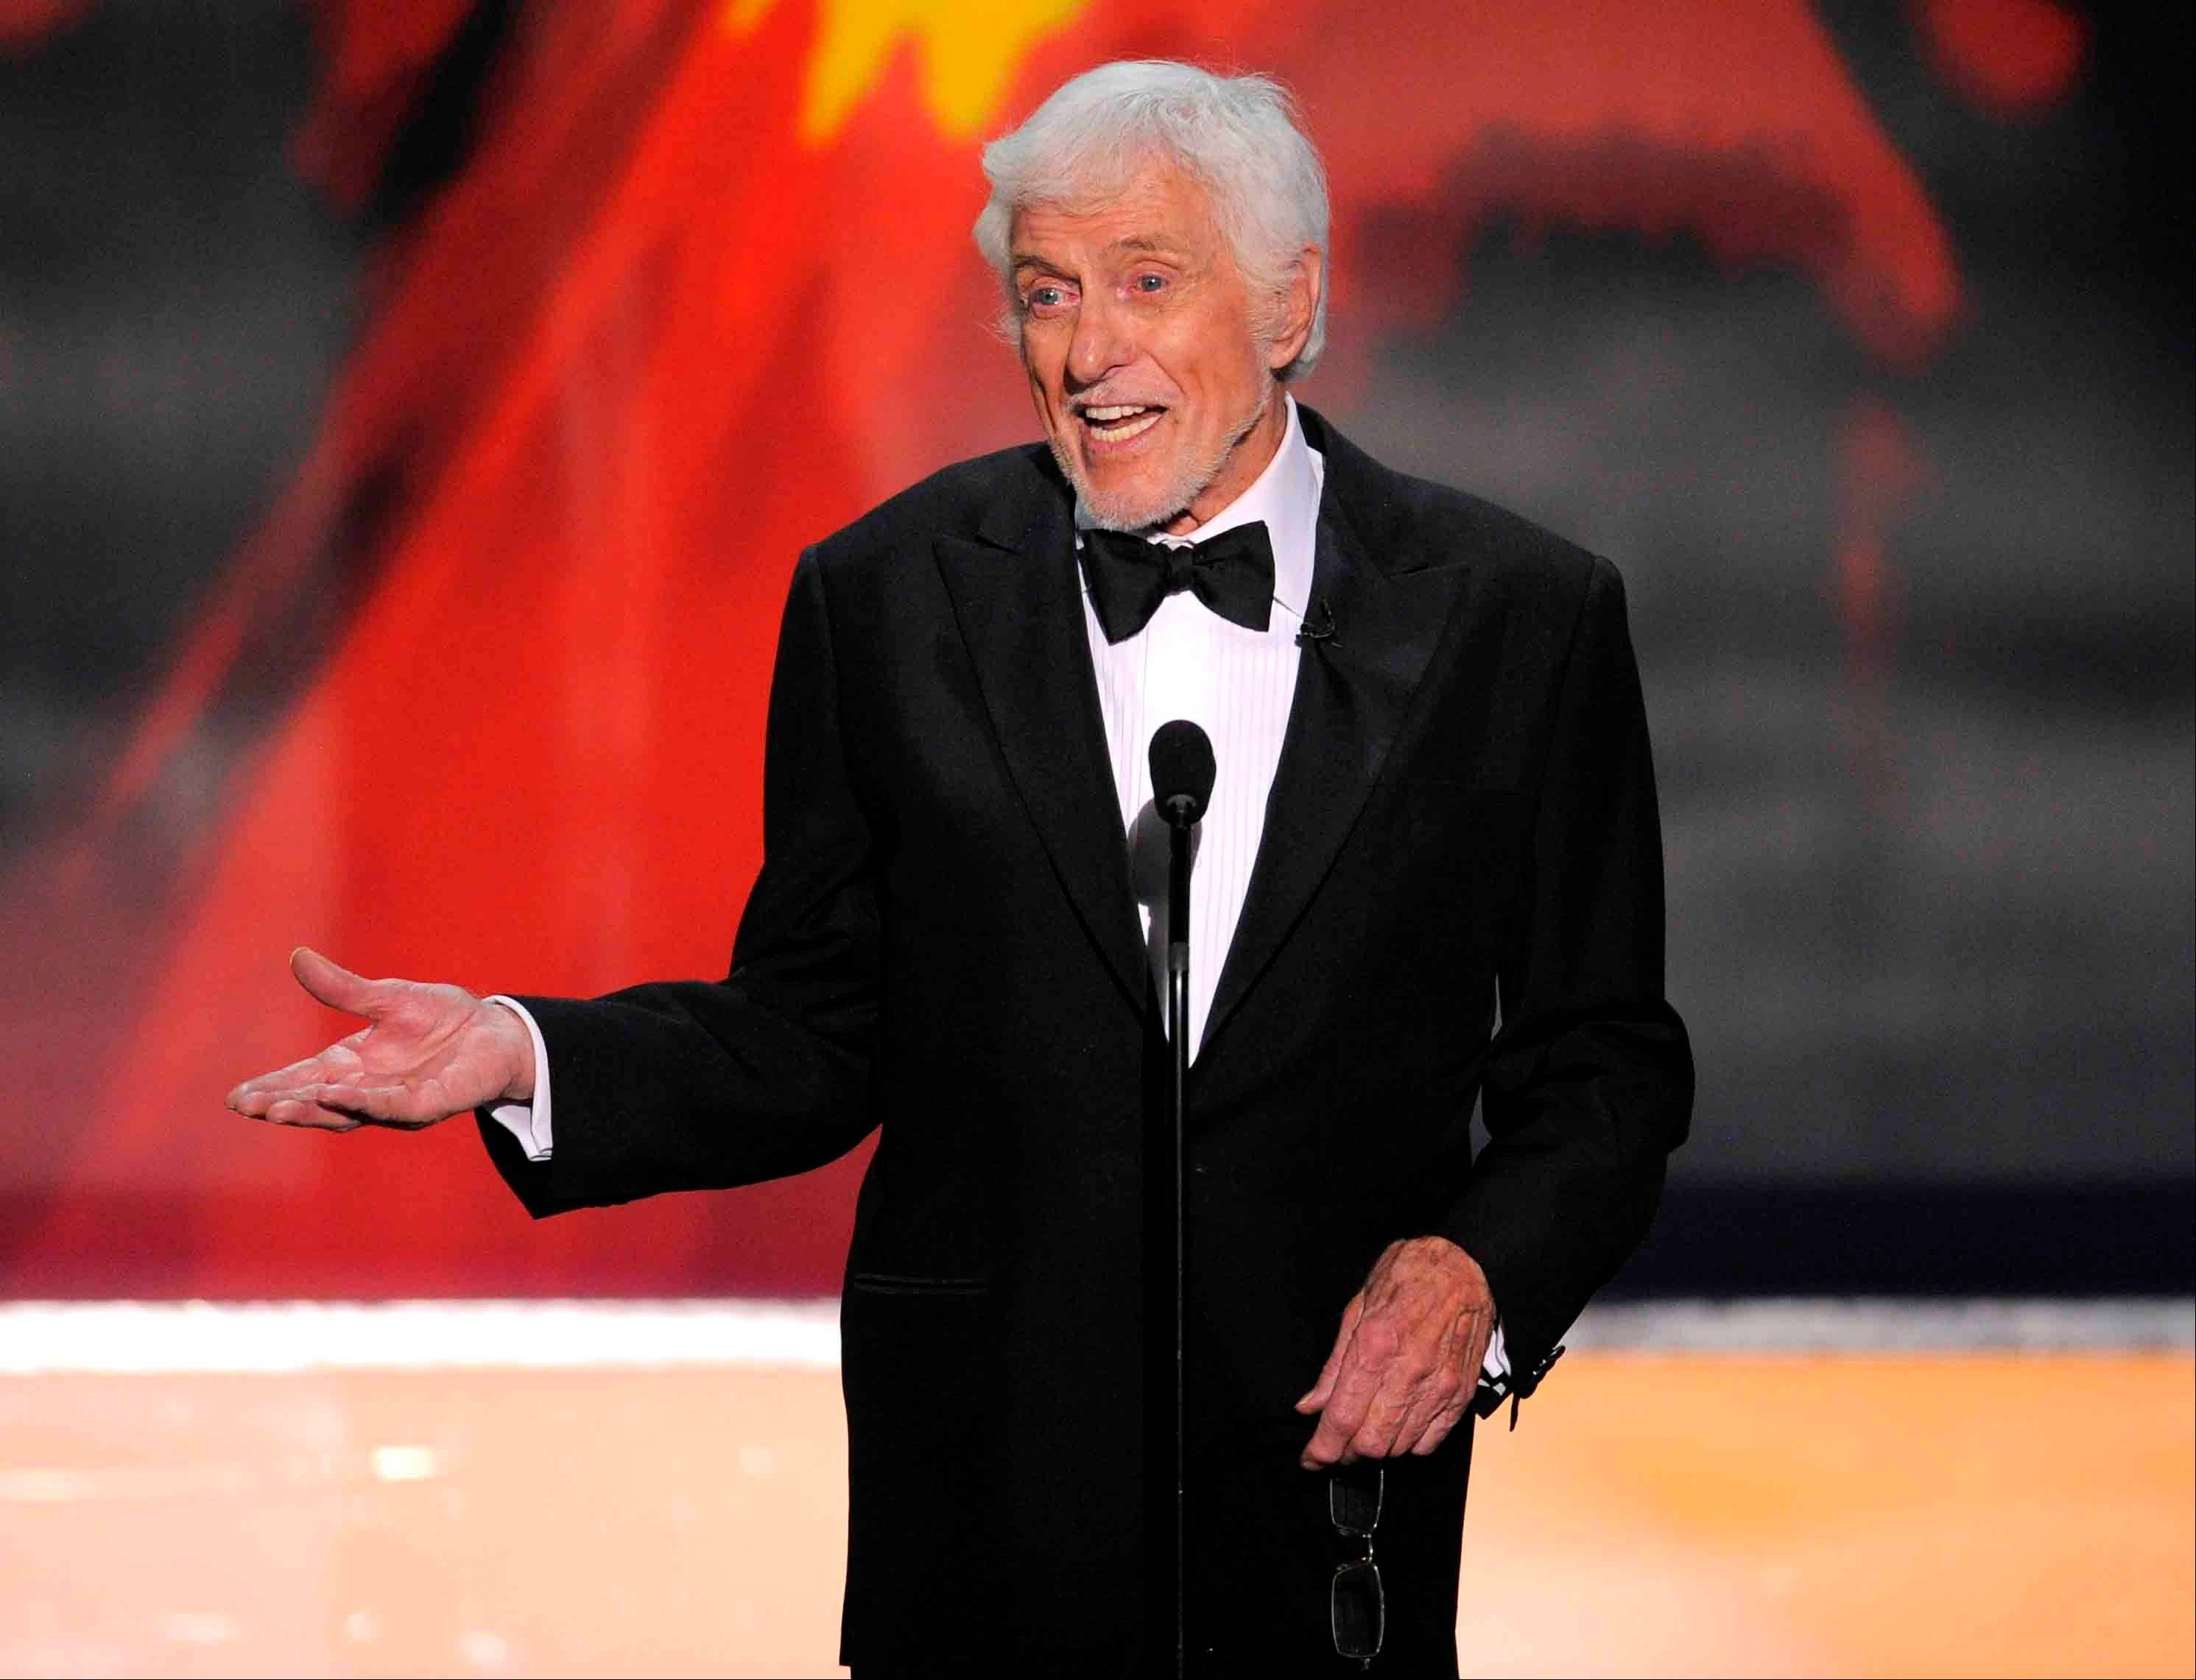 Dick Van Dyke will receive the Screen Actors Guild's highest honor: The Life Achievement Award, which will be presented at the awards ceremony in January.